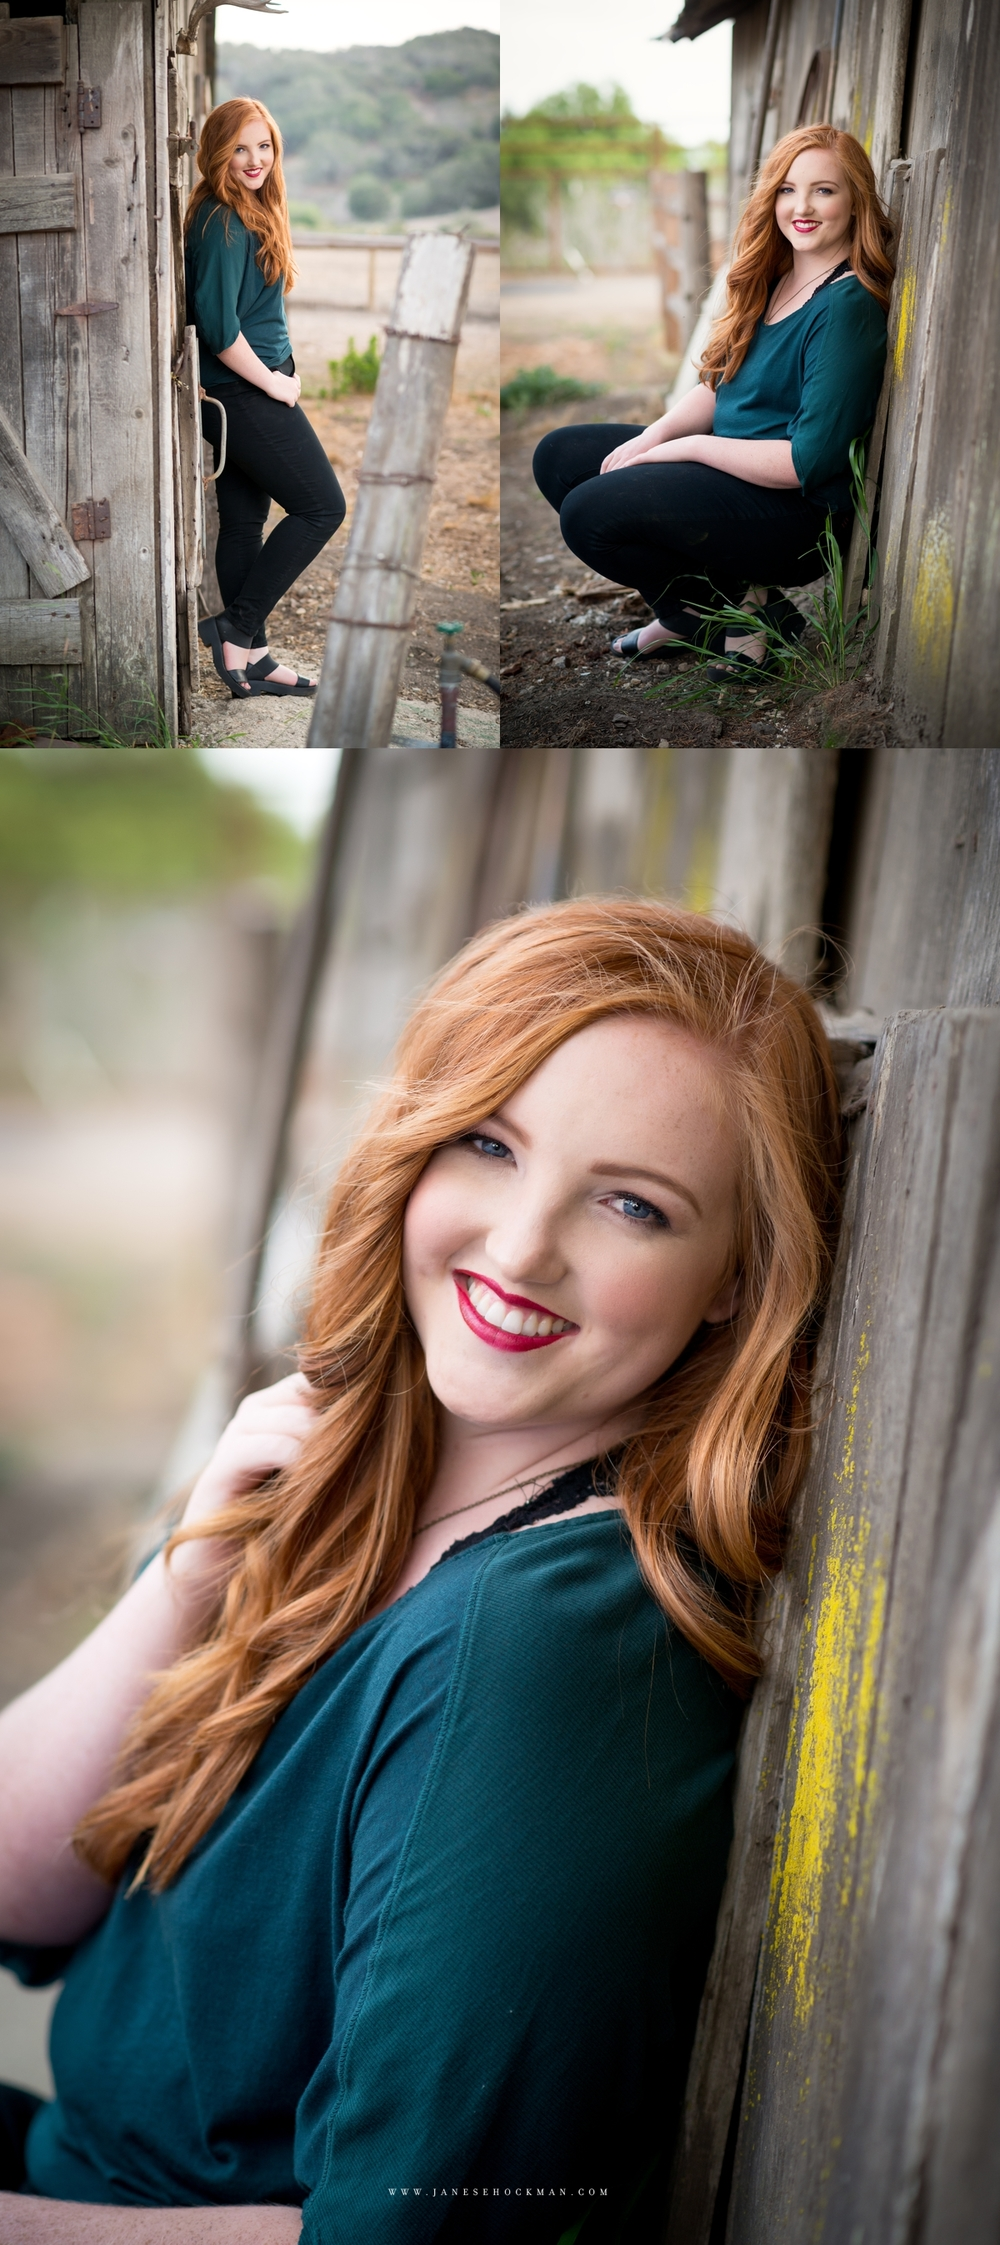 Grace-Janese Hockman Photography San Luis Obispo High School Senior Portraits 4.jpg